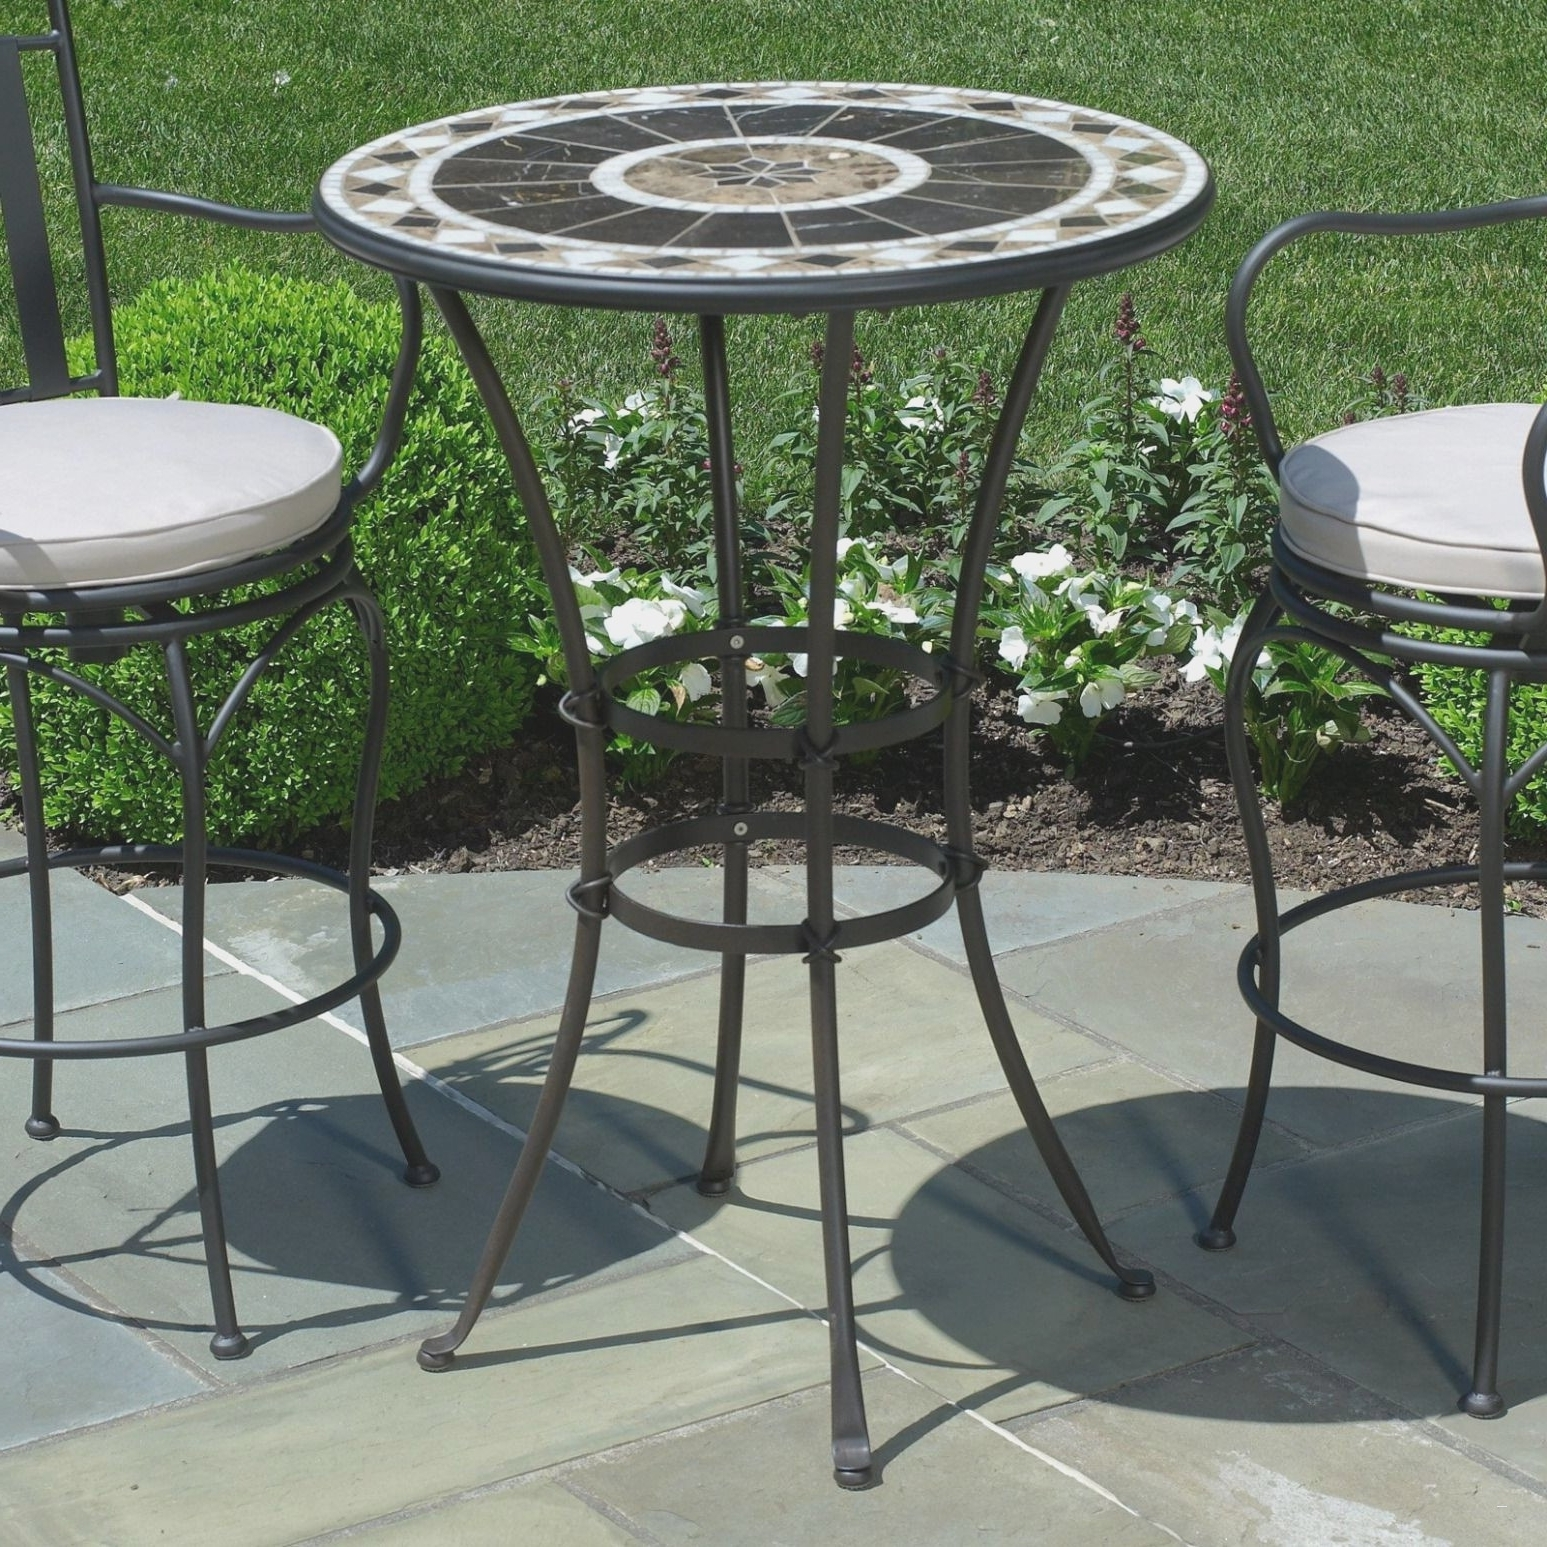 Patio Conversation Sets Under 200 For Fashionable Outdoor Furniture Bar Stools (View 14 of 20)